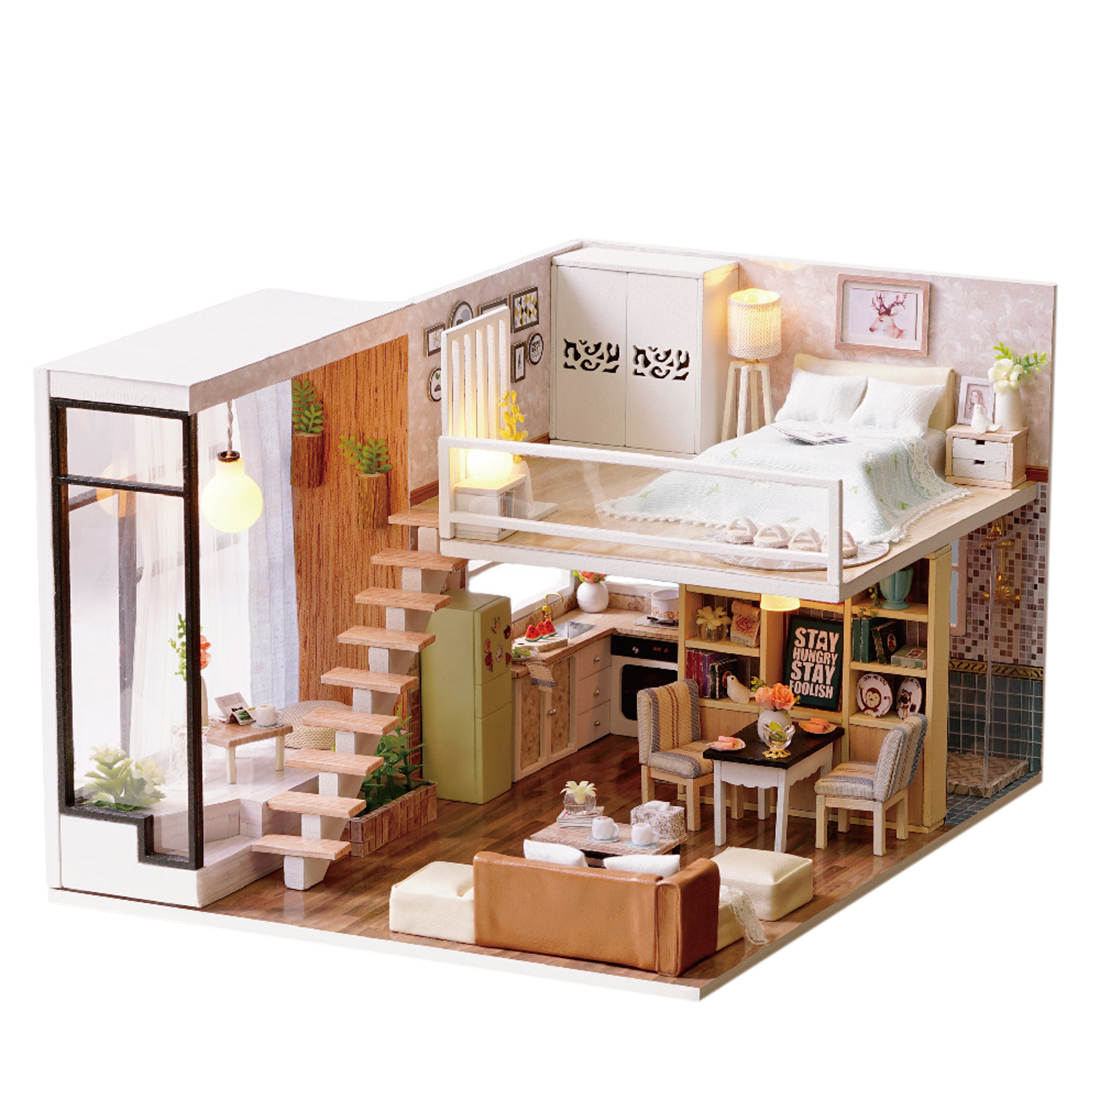 Dollhouse Miniature Christmas Children Gift Dollhouses Waiting for Time Creative 3D DIY Family Doll House Dolls Accessories Toy